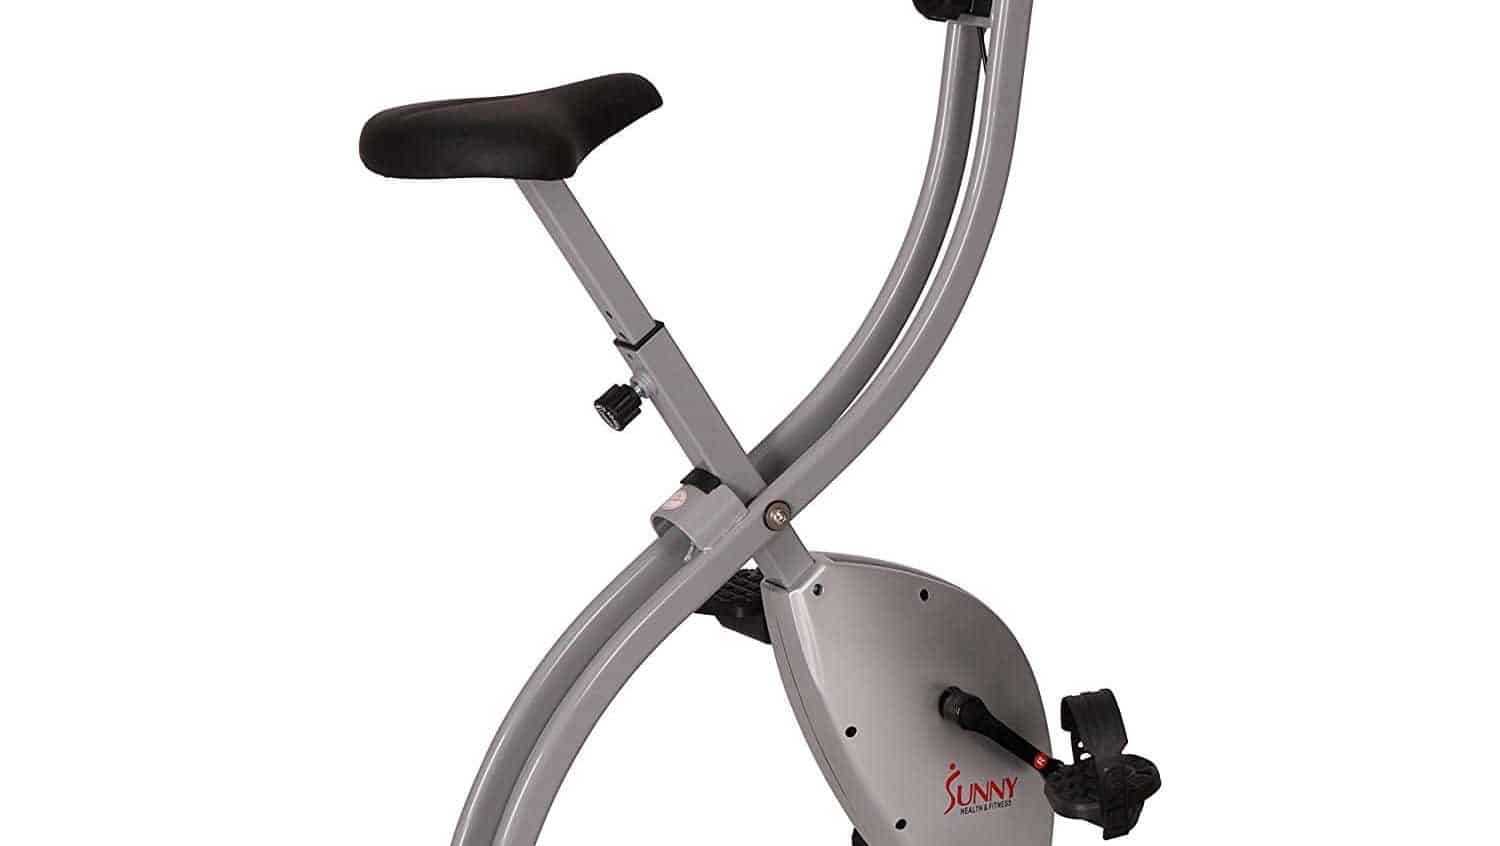 Sunny Health & Fitness SF-B2605 Upright Exercise Bike Review